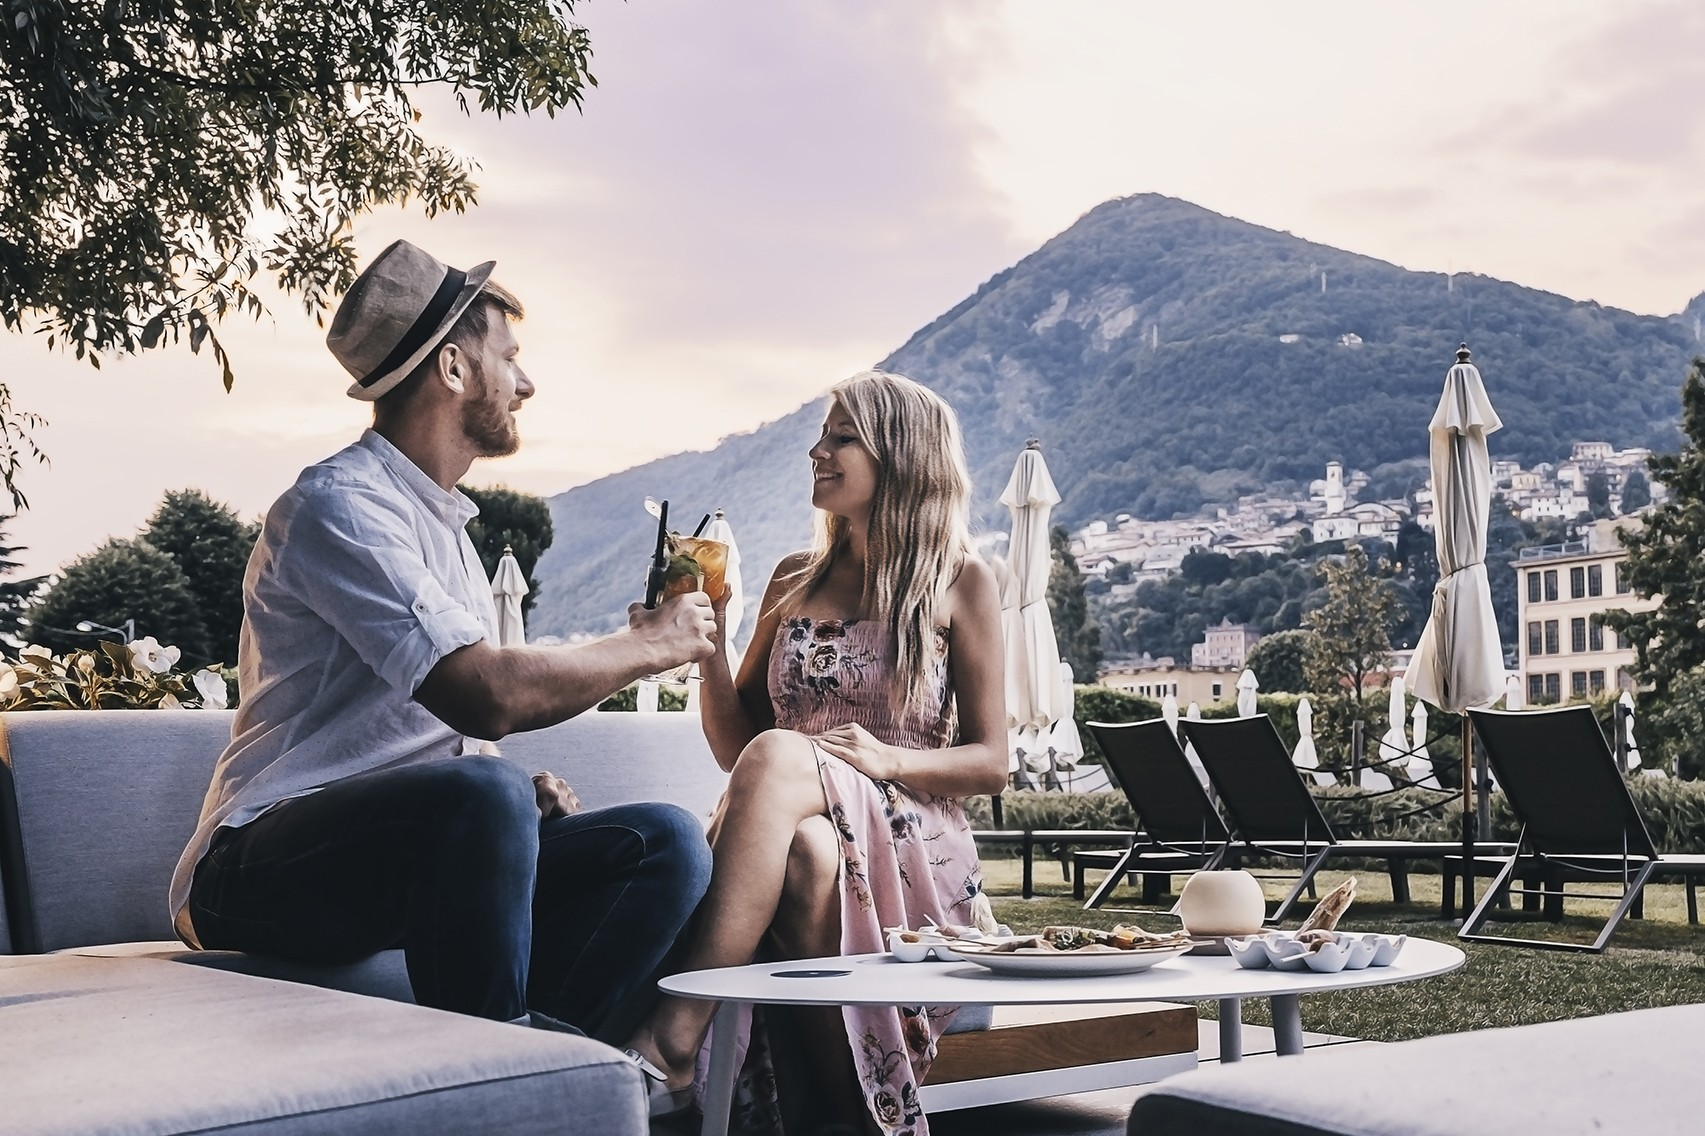 Couple having a toast in a park surrounded by mountains and trees